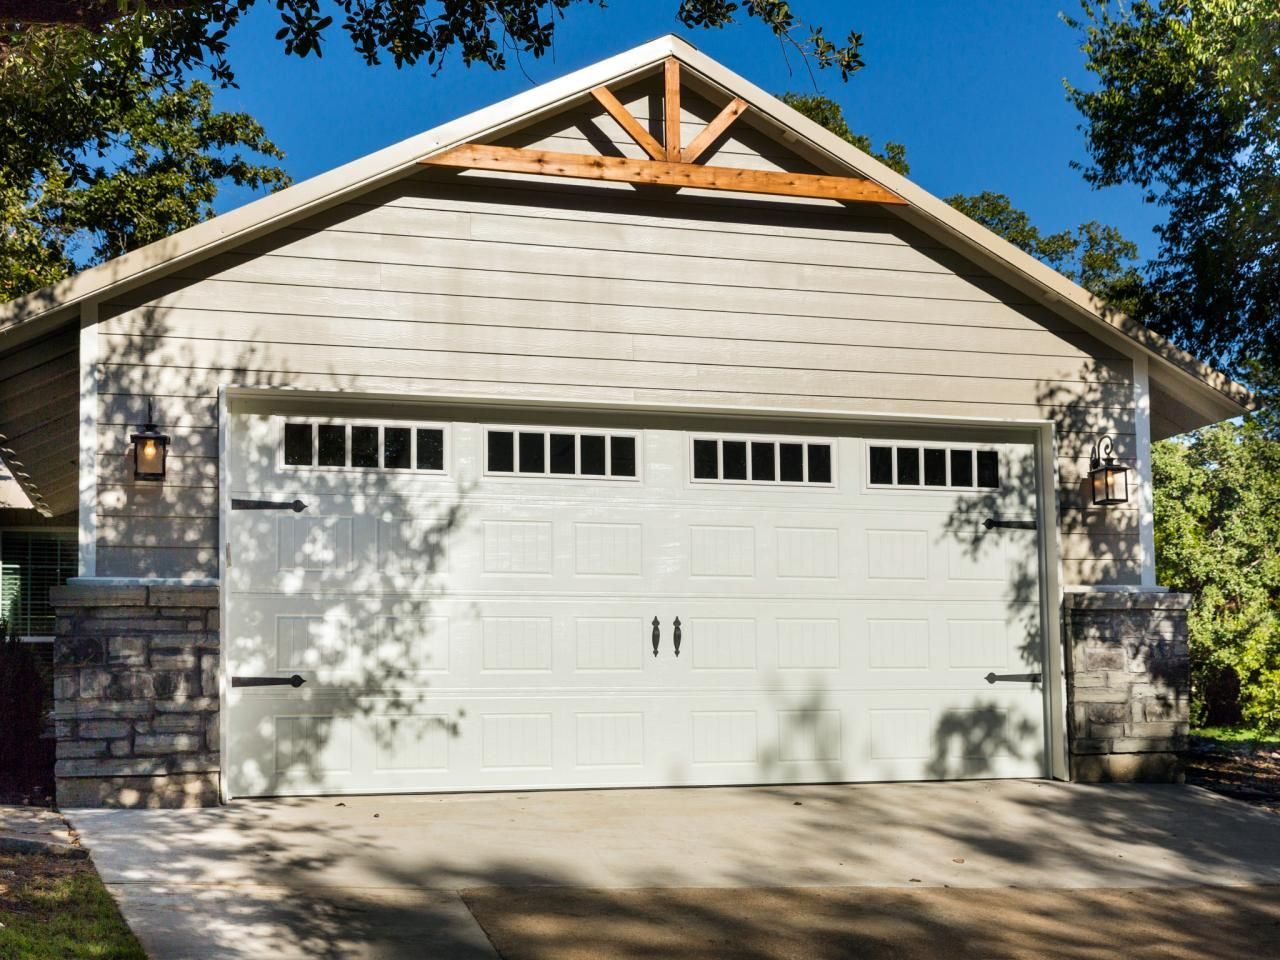 The details on the garage exterior, including stone and wood trim, add  character